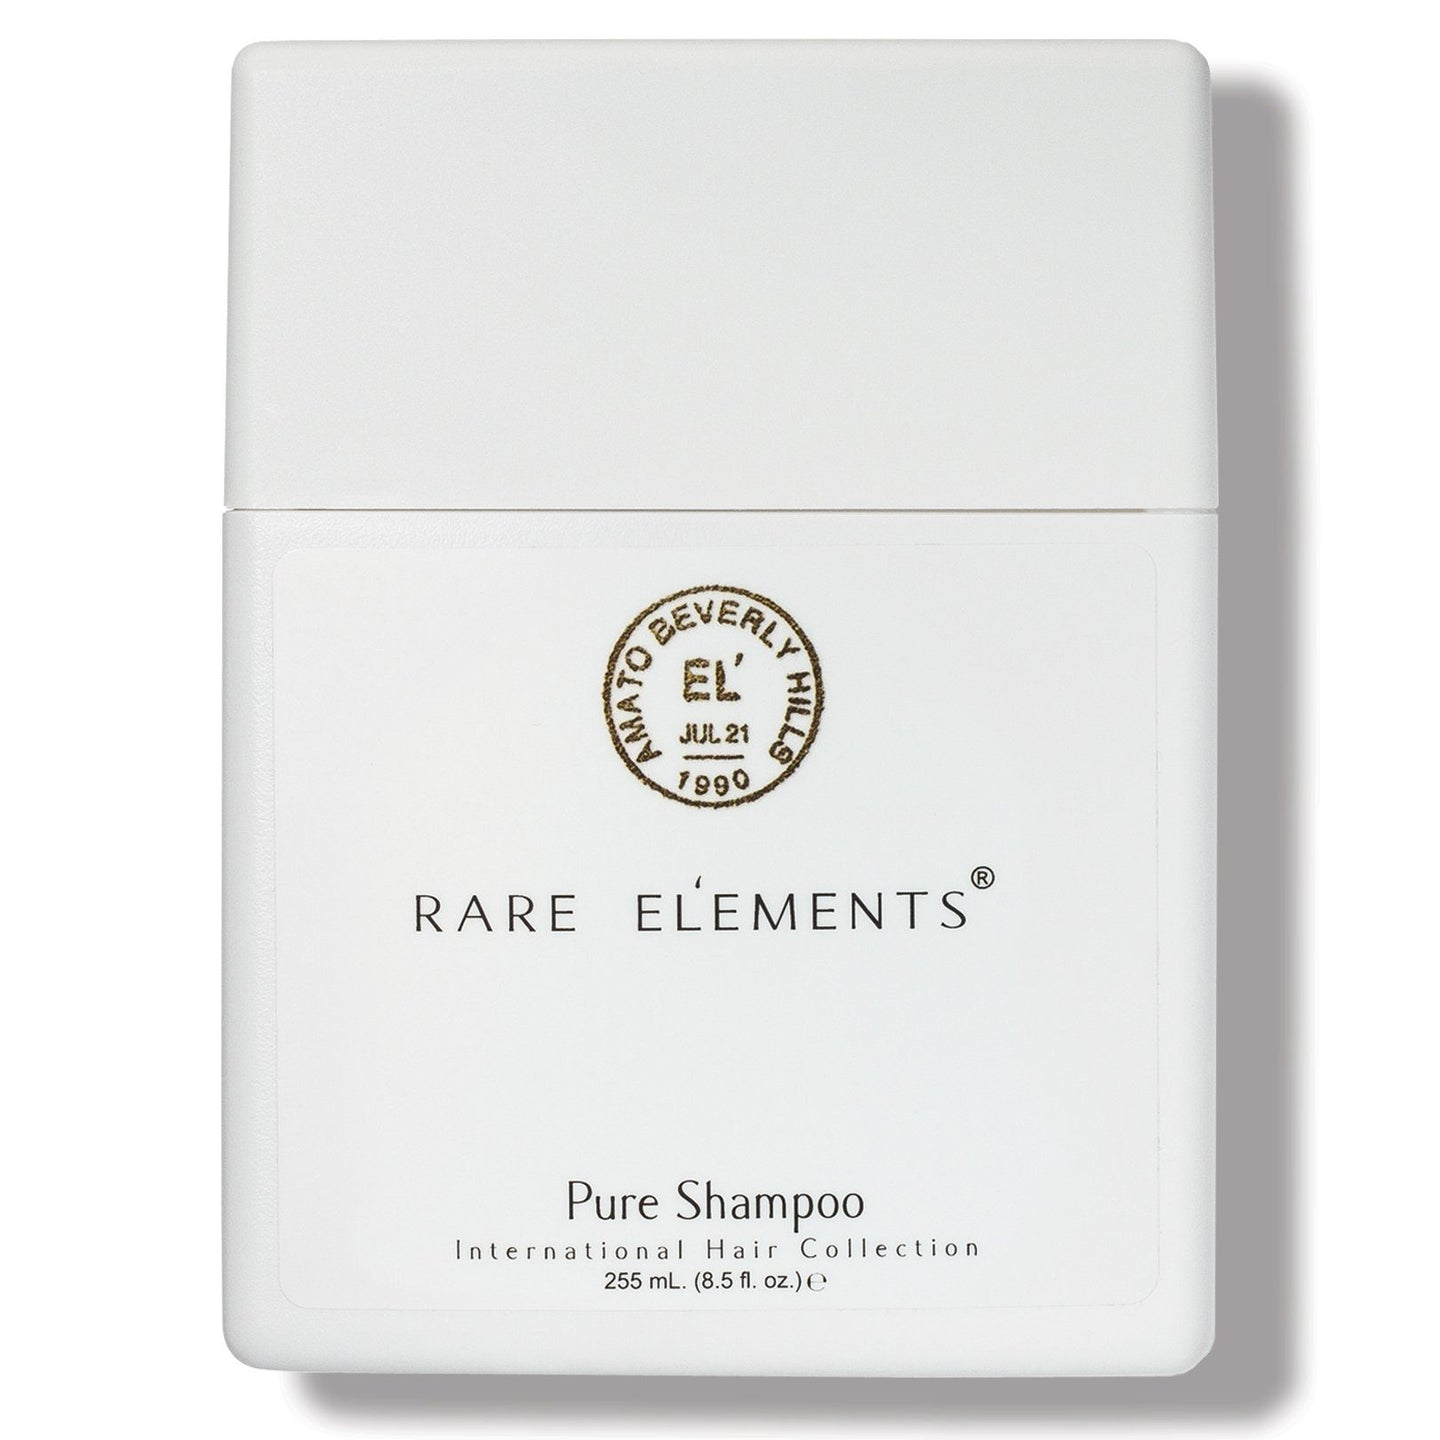 Rare El'ements Pure Shampoo Hydrating Hair Bathe